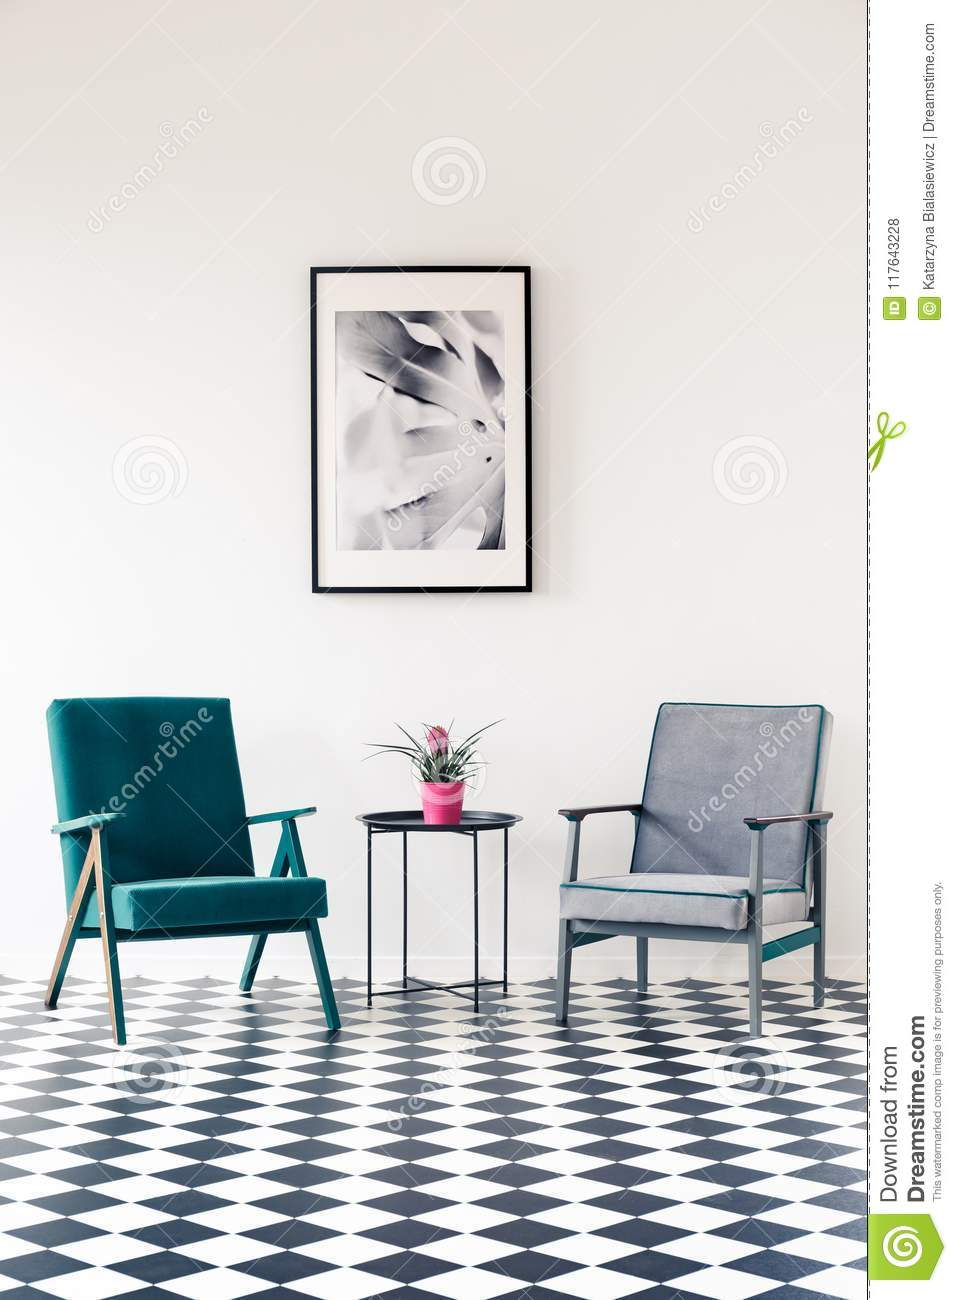 Grey And Turquoise Living Room Stock Photo - Image of space, living ...